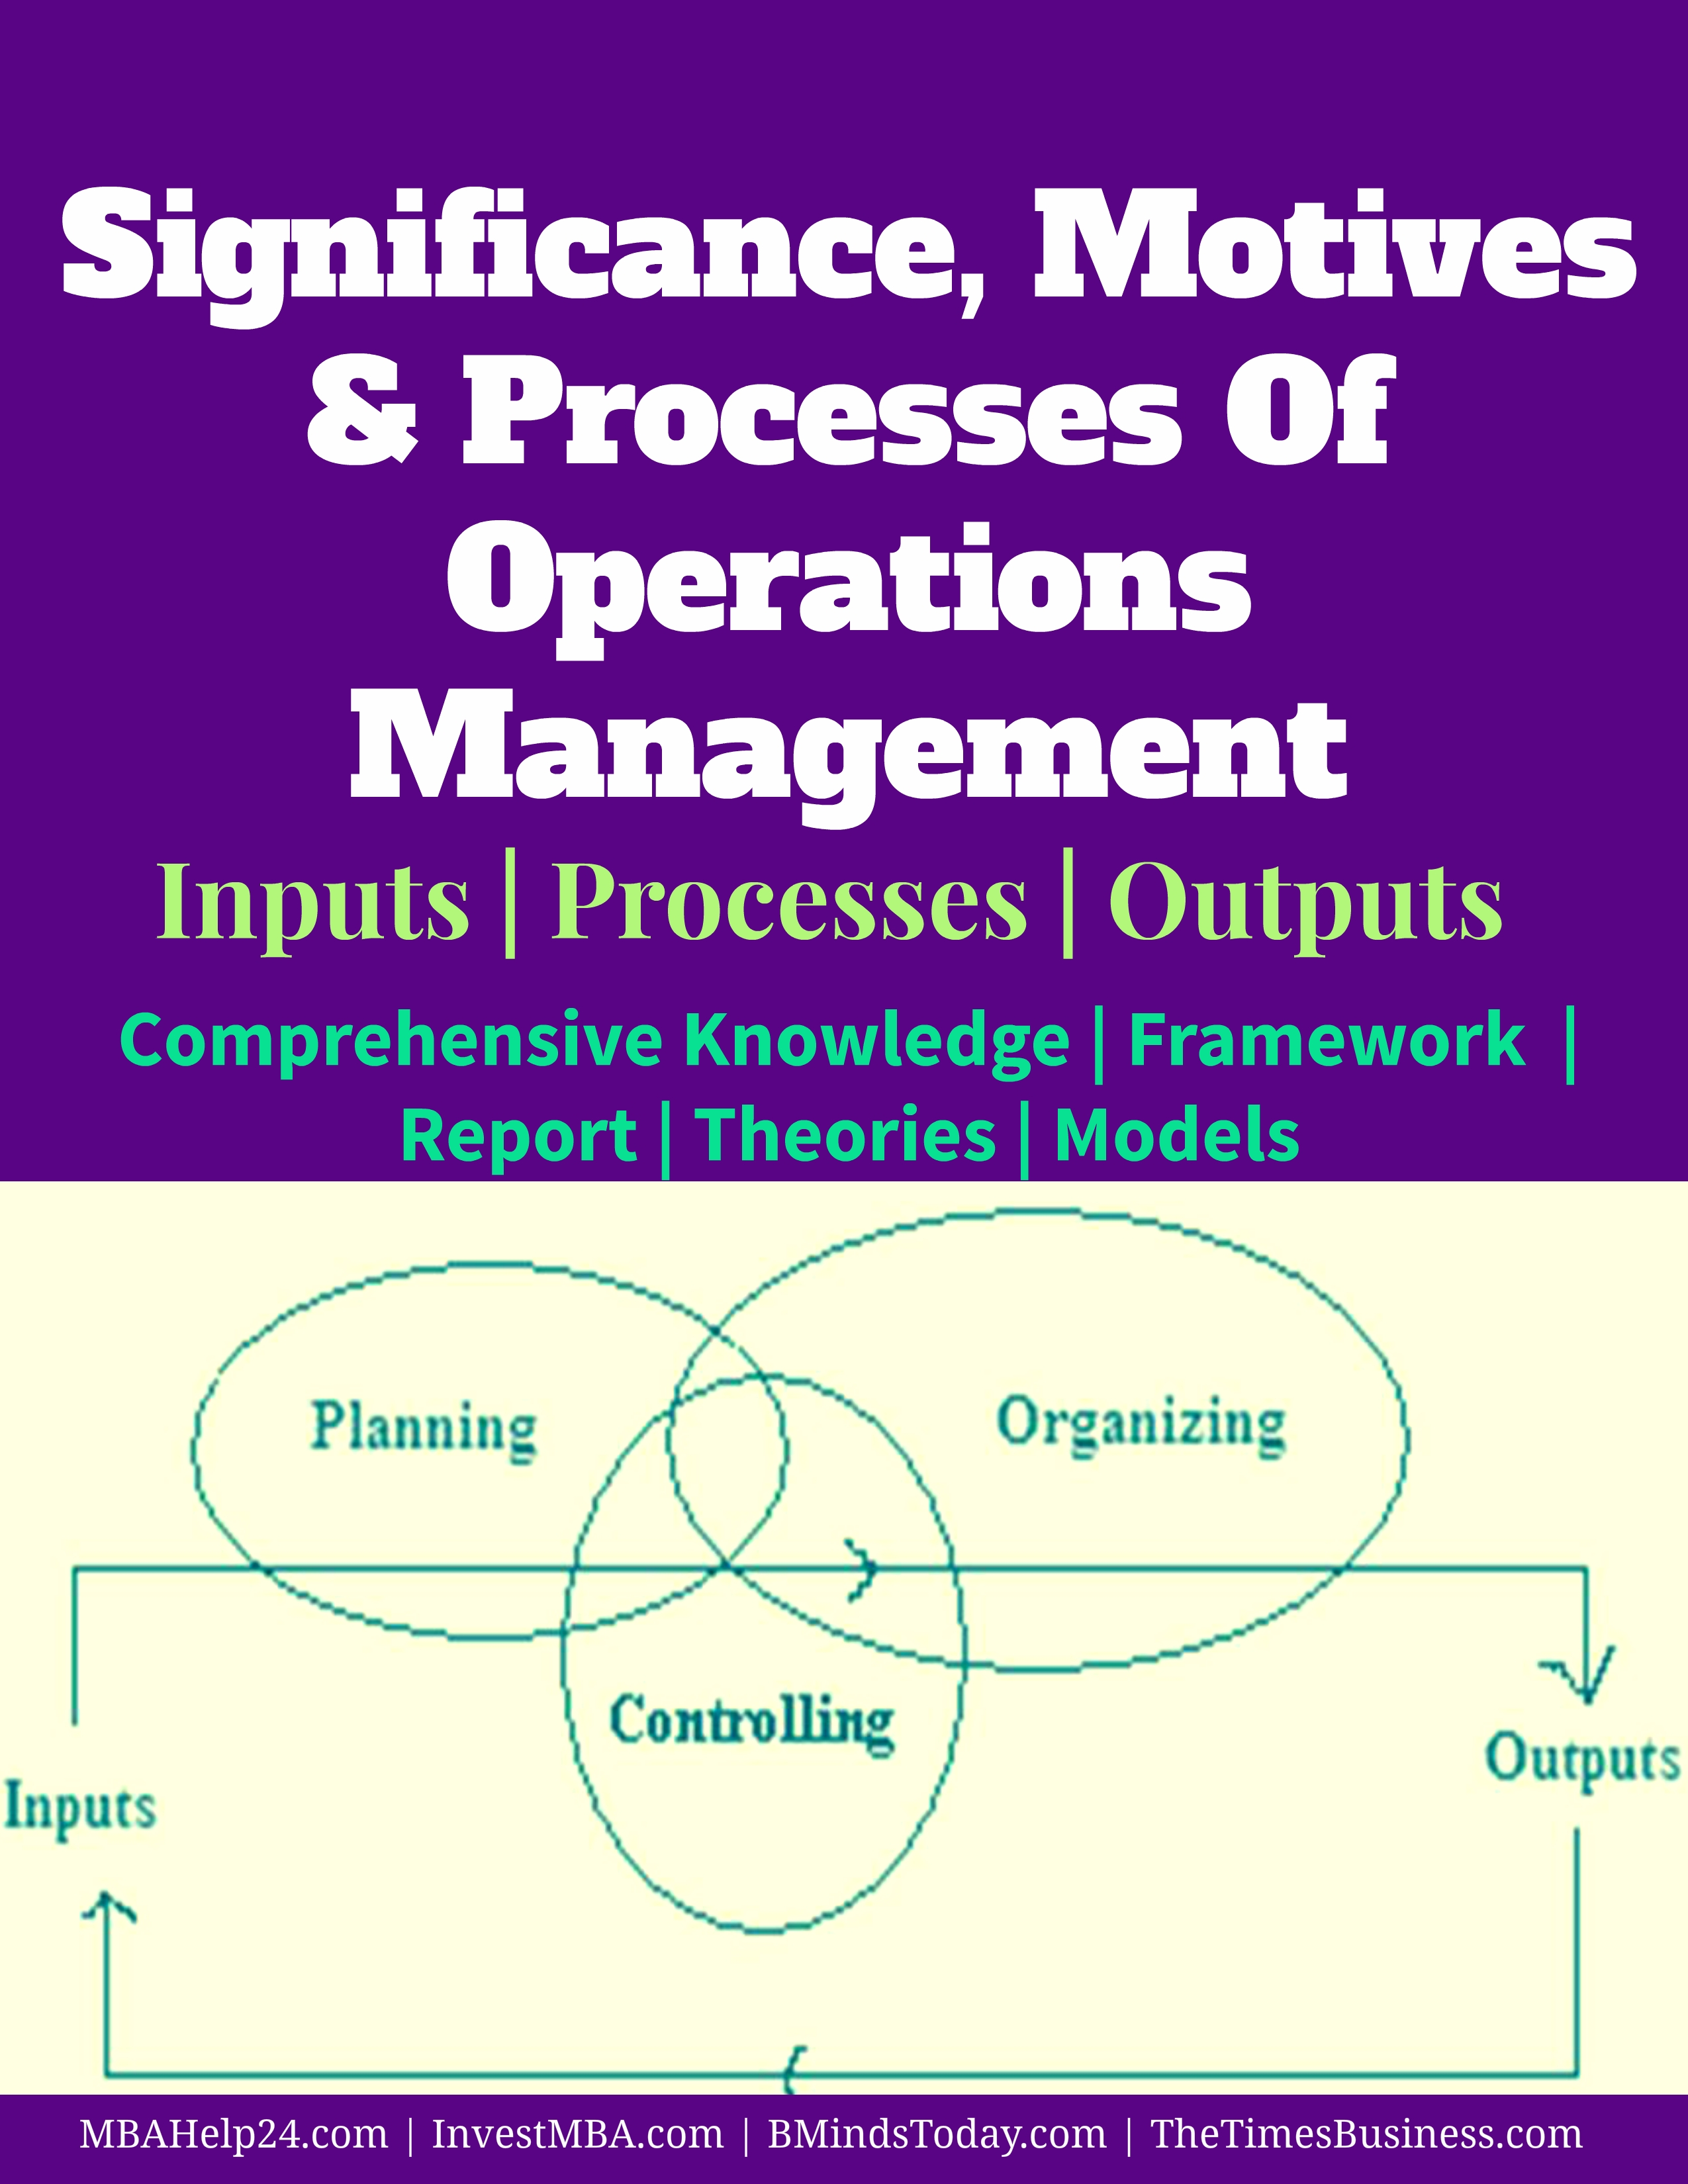 Significance, motives and processes of Operations Management operations management Processes Of Operations Management | Significance | Motives | Inputs | Outputs Significance motives and processes of Operations Management processes of operations management | significance | motives Processes Of Operations Management | Significance | Motives Significance motives and processes of Operations Management